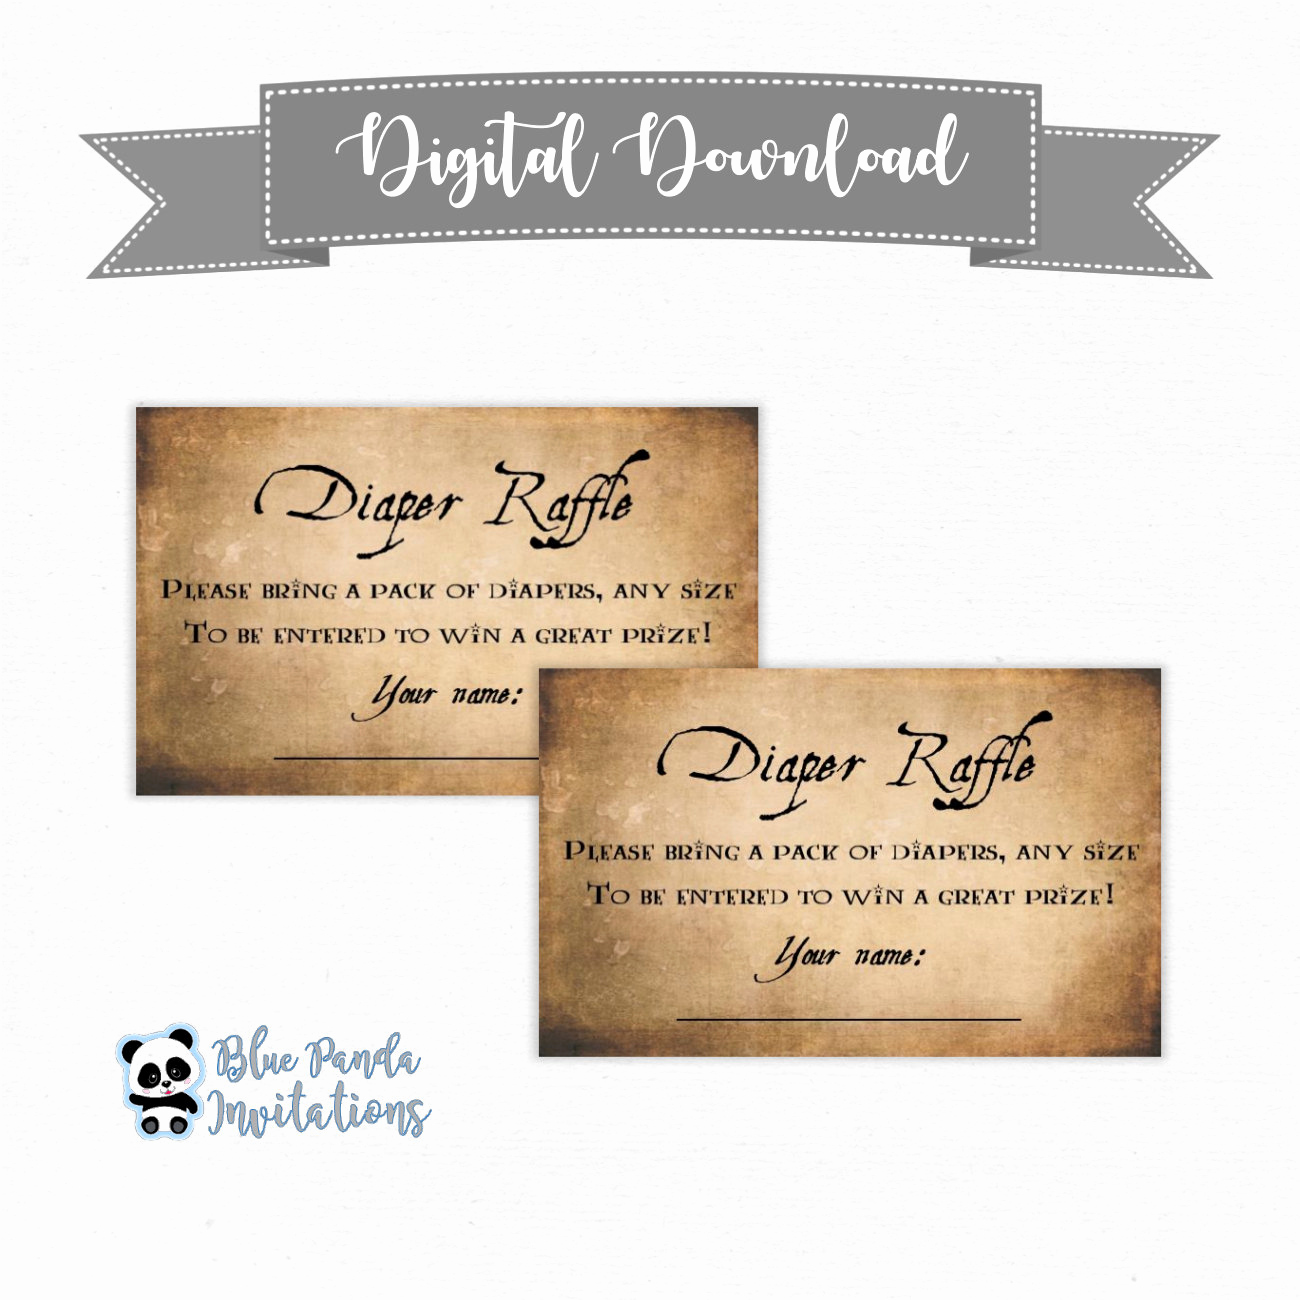 Diaper Raffle Invitation Inserts Best Of Diaper Raffle Invitation Inserts Baby Shower Downloadable